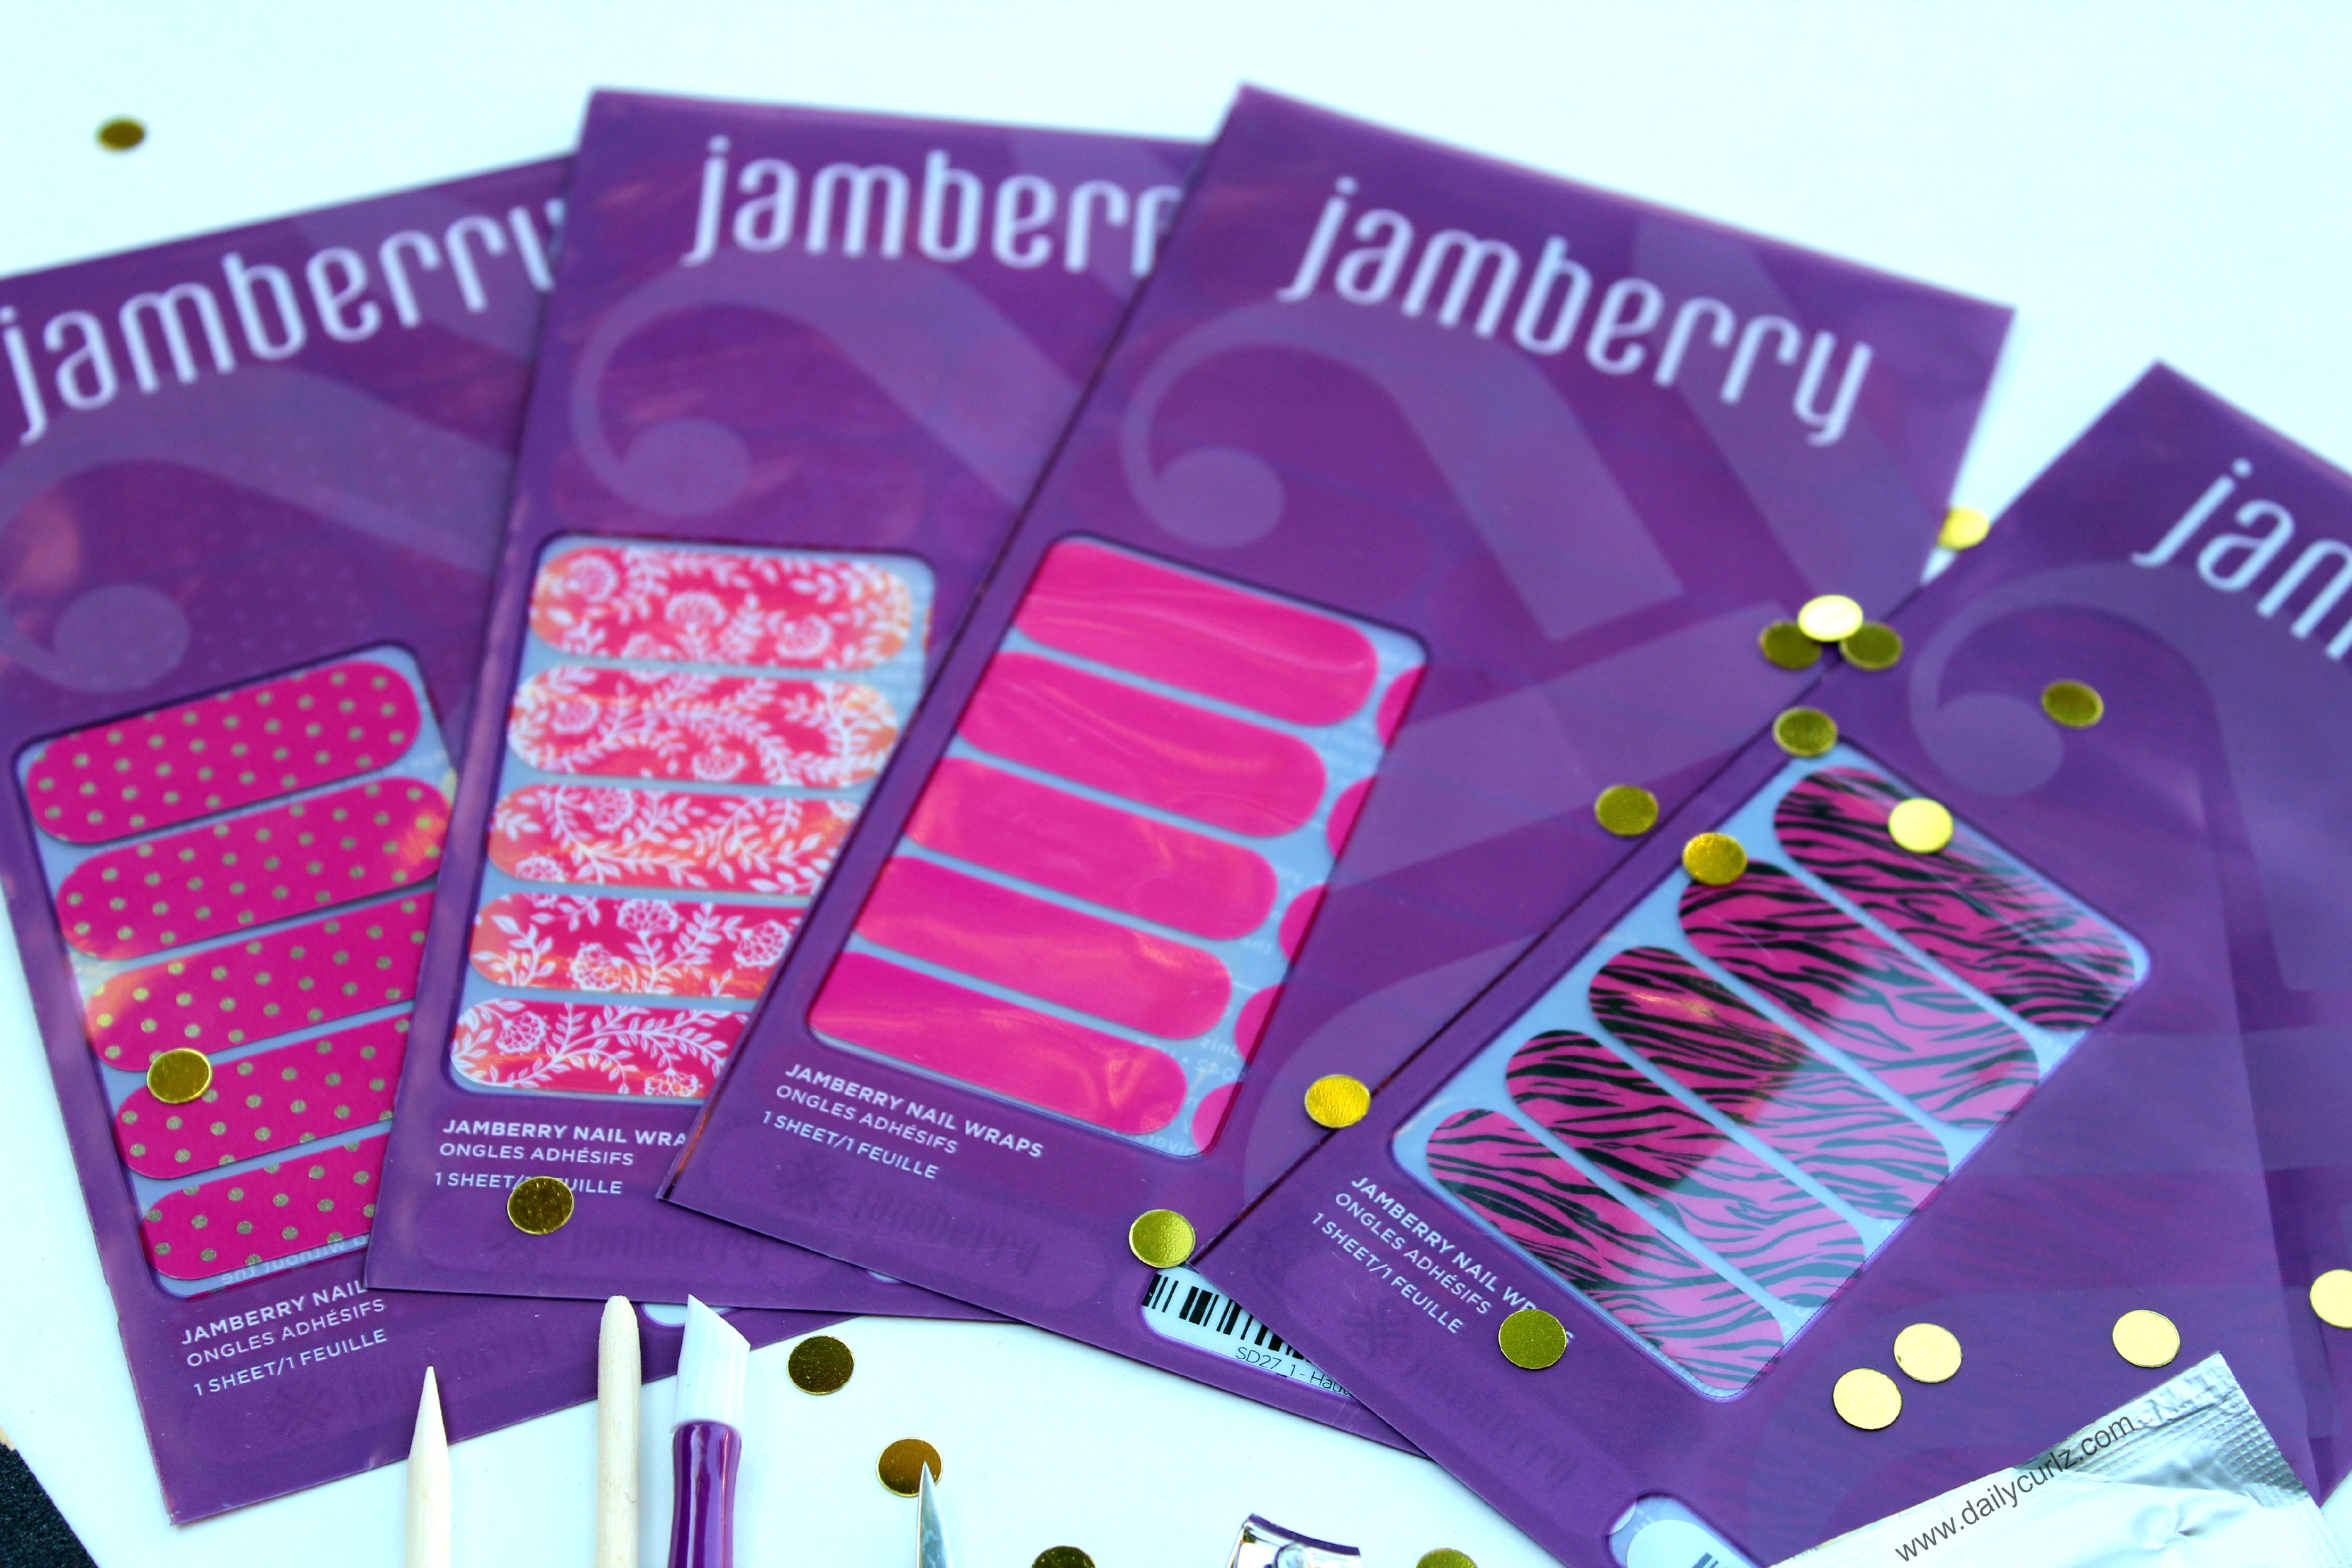 Jamberry Nail wraps / Calcomanias para las uñas Jamberry